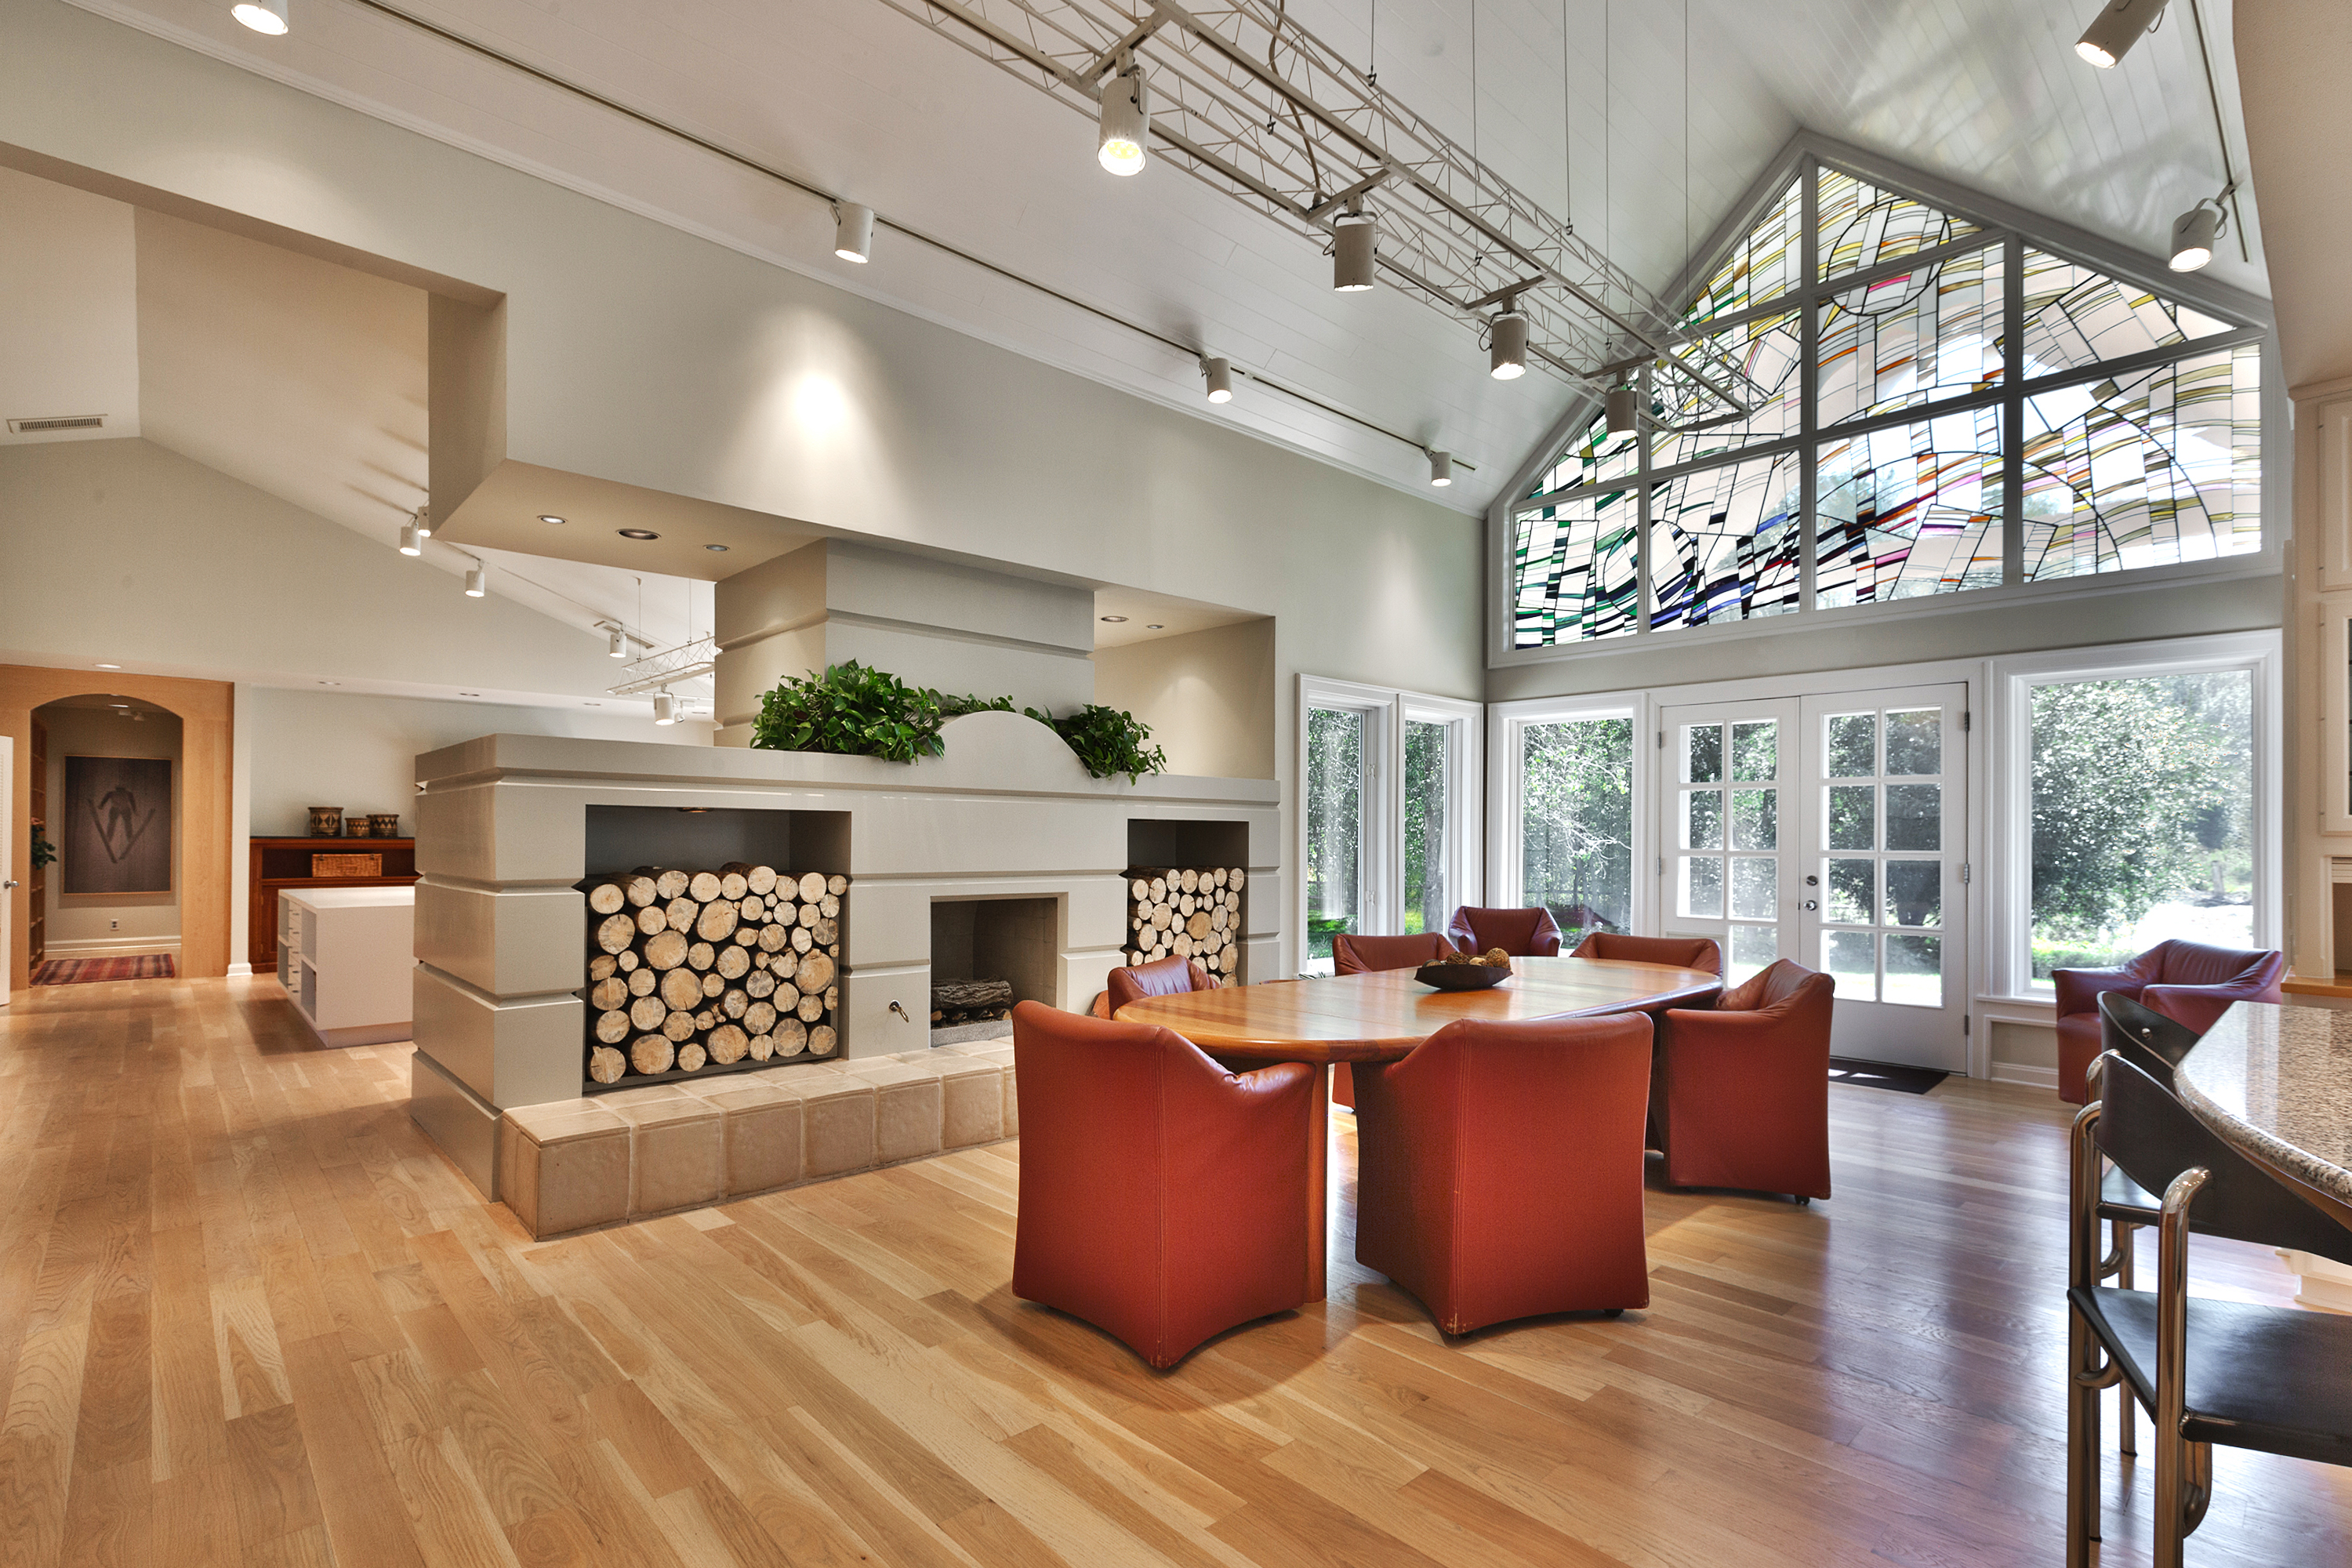 Fabulous Top 10 Luxury Home Design Trends To Expect This Year Home Interior And Landscaping Ologienasavecom